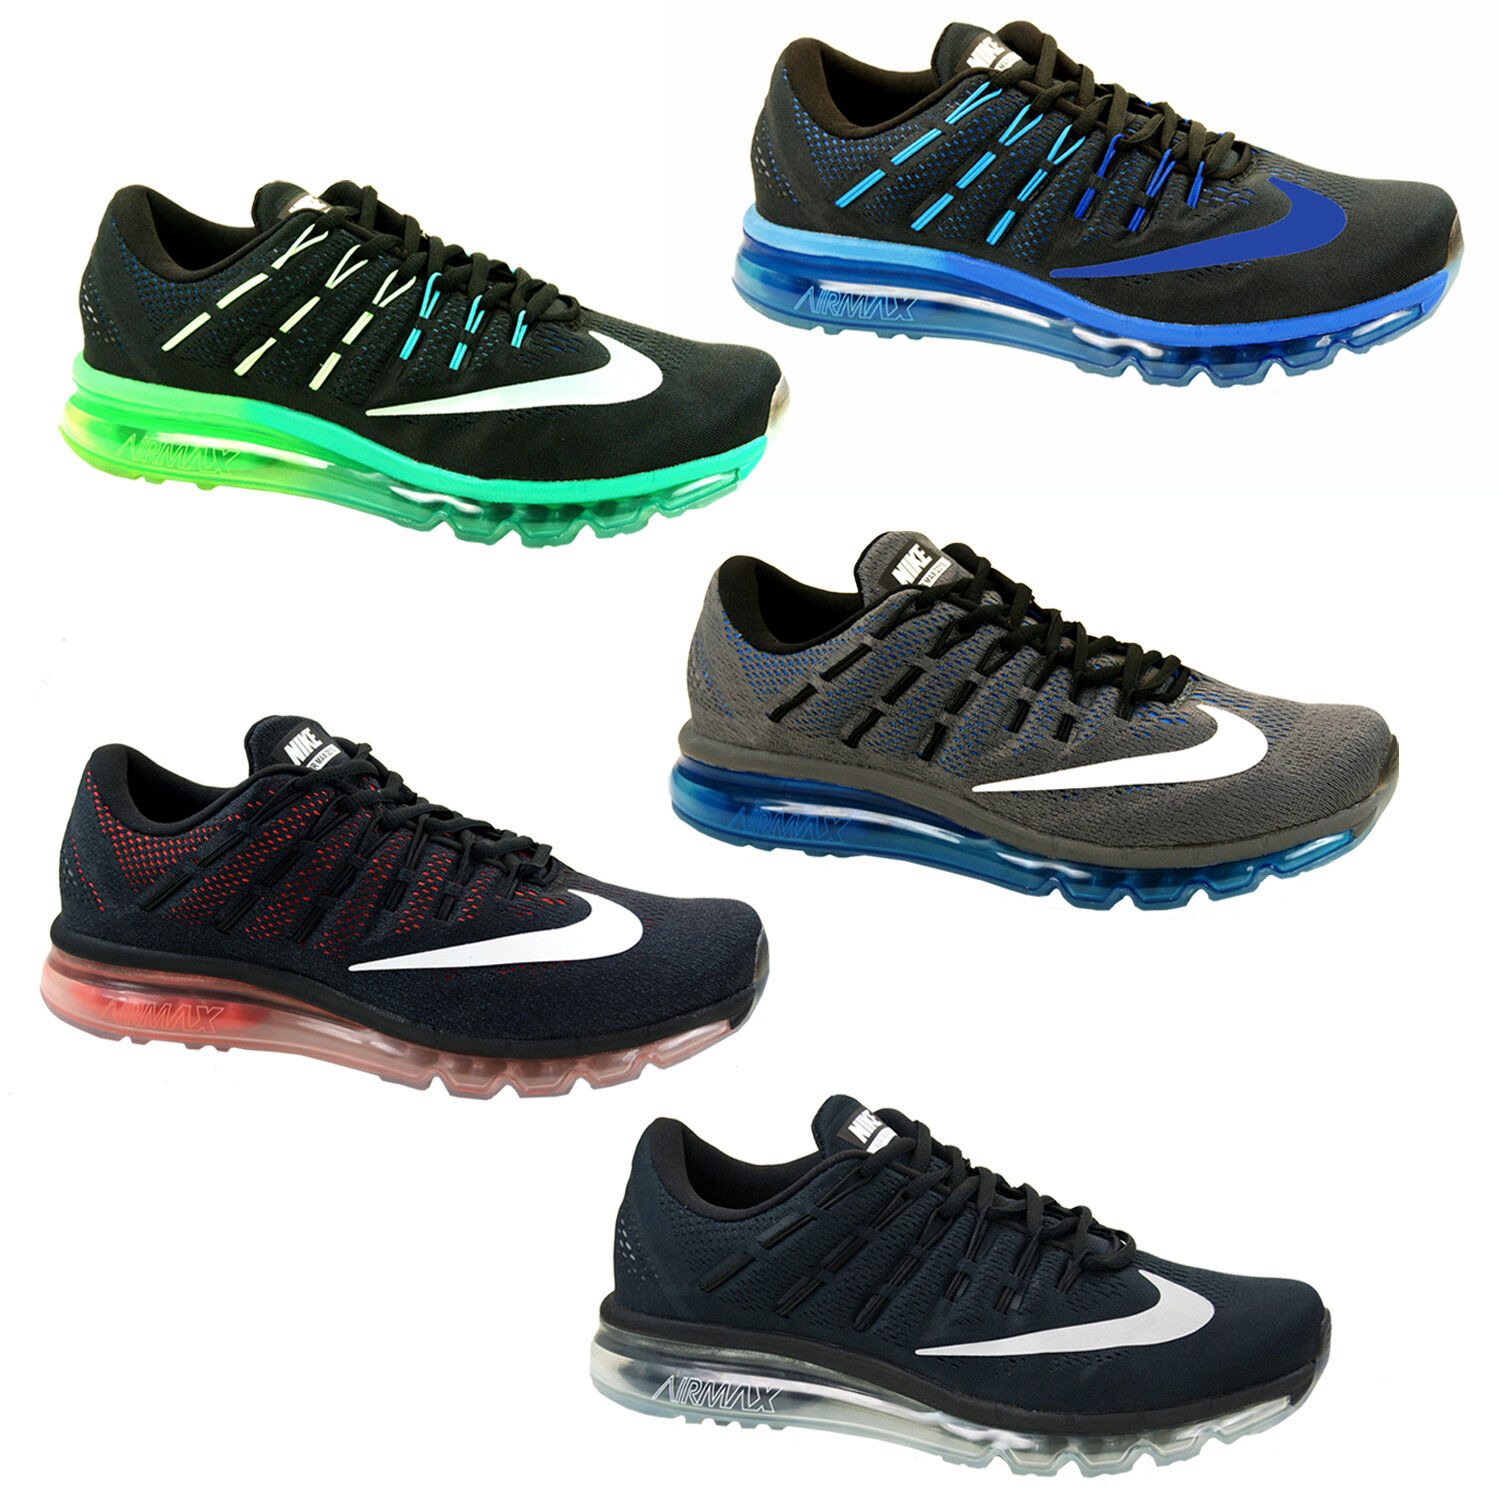 Nike Air Max 2016 Trainer Running Shoes Sneakers Sports Shoes Mens 806771